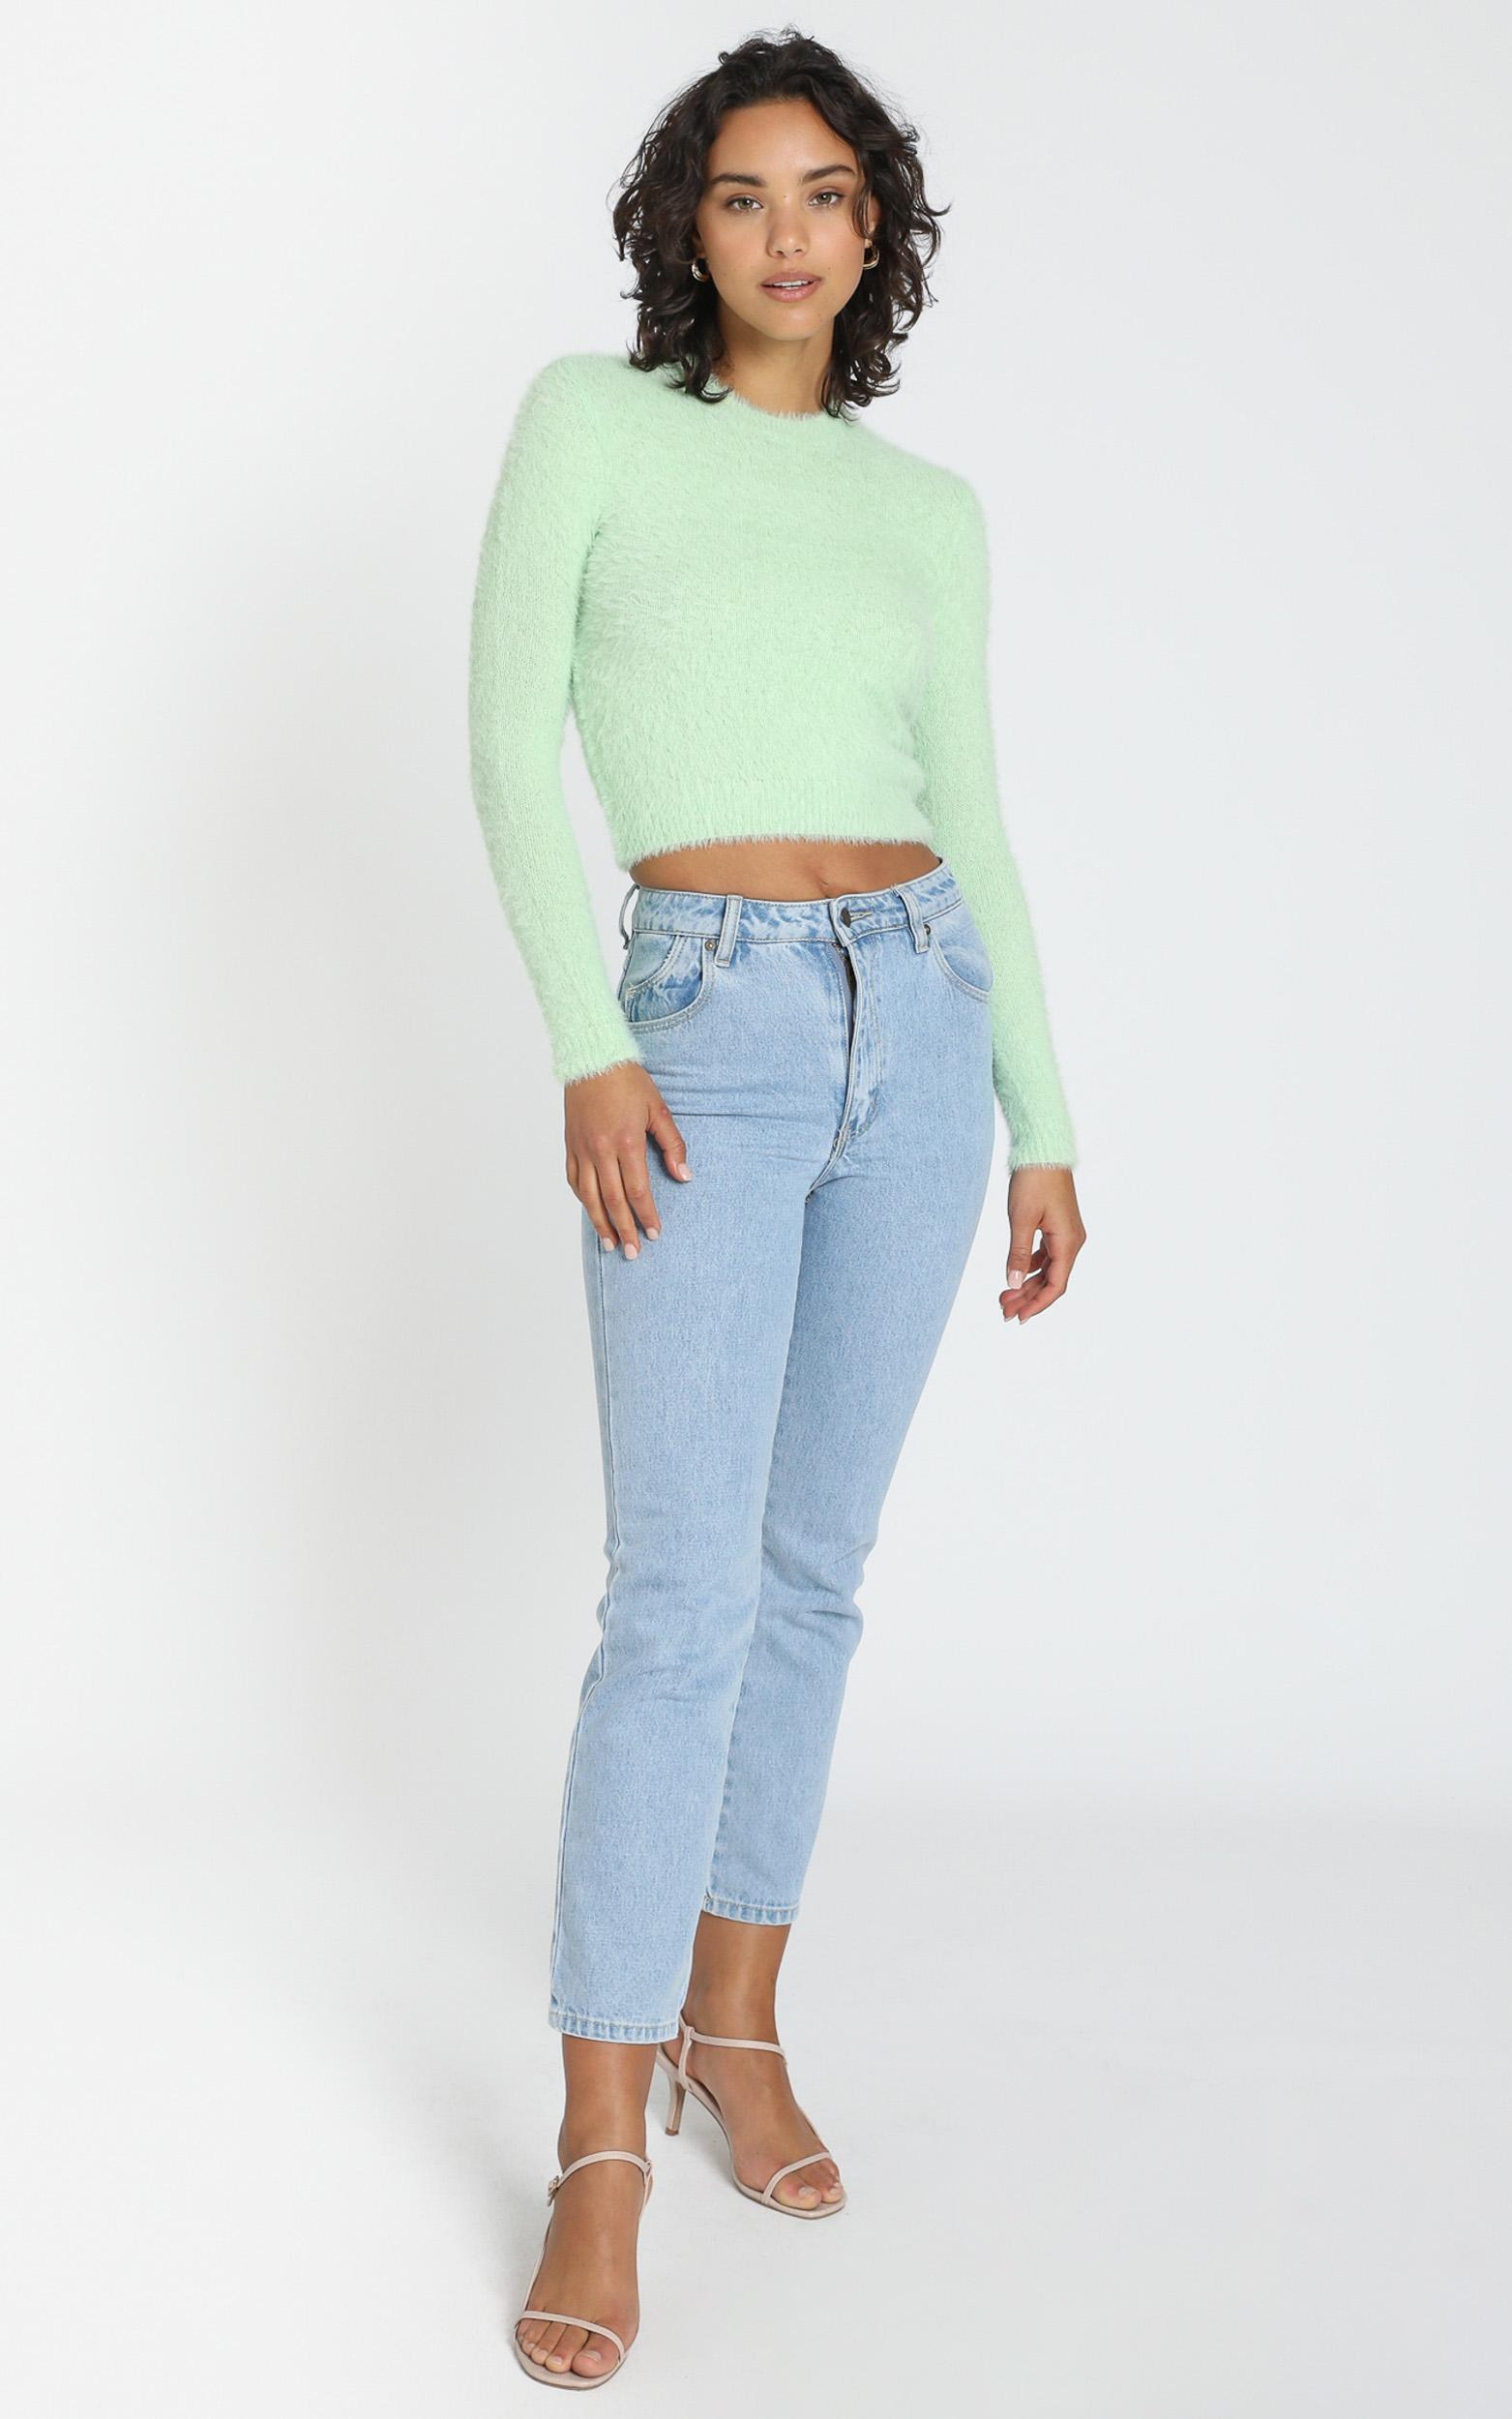 Switching Sides Knit Top in mint - 4 (XXS), Green, hi-res image number null